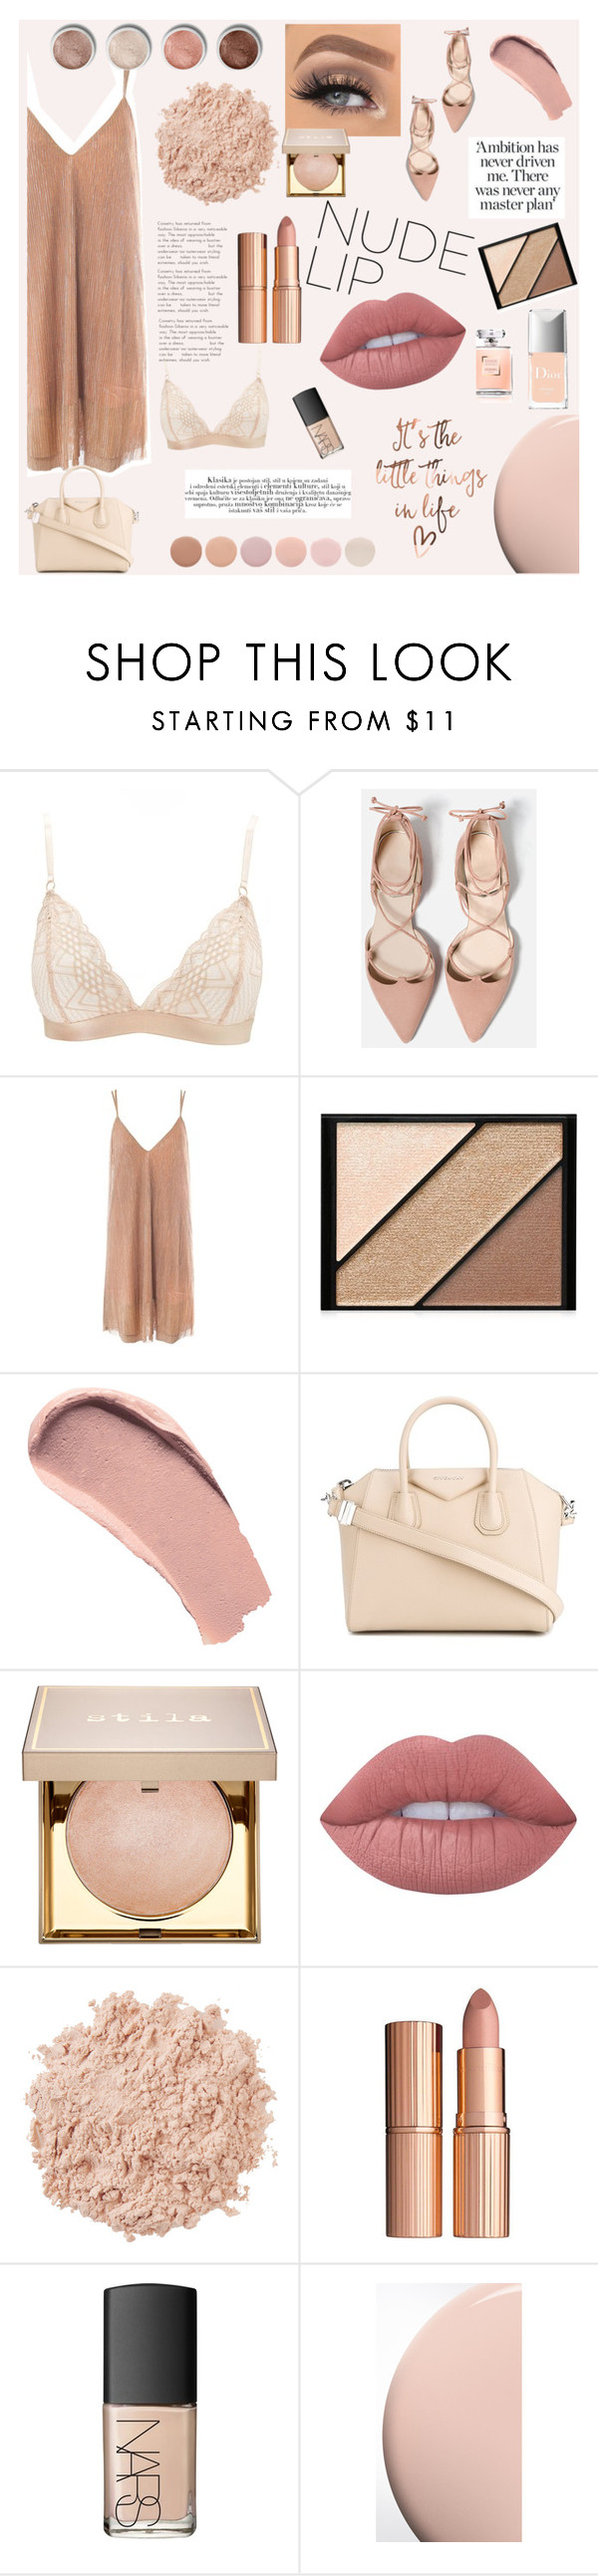 """The Perfect NUDE LIP contest"" by whenfashionhitshard ❤ liked on Polyvore featuring beauty, Charlotte Russe, Sans Souci, Elizabeth Arden, Burberry, Terre Mère, Givenchy, Stila, Lime Crime and La Mer"